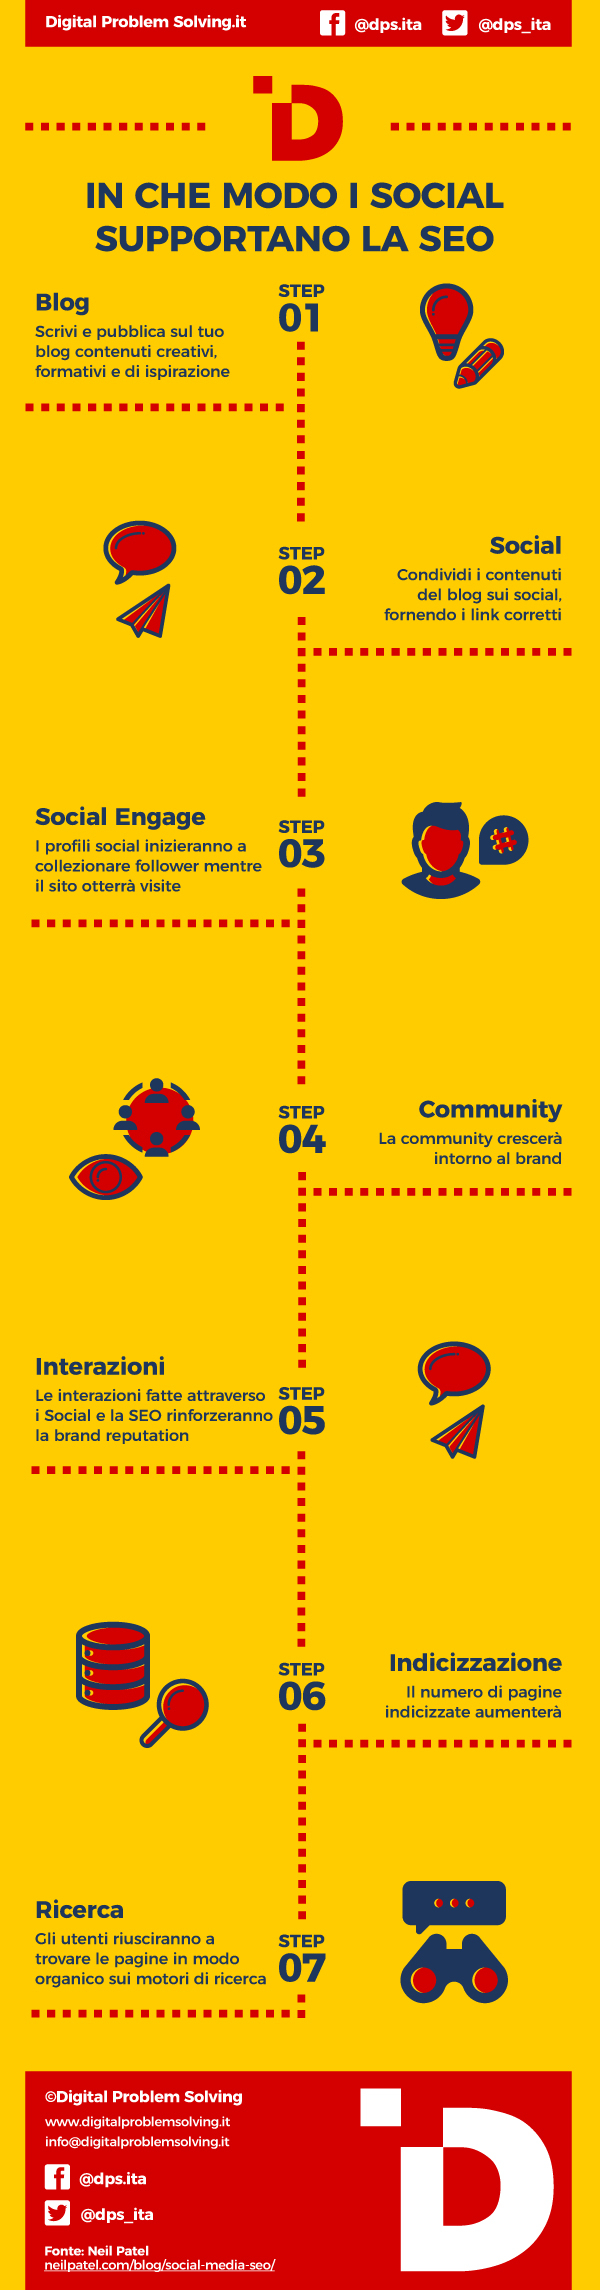 Infografica - In che modo i Social Media supportano la SEO